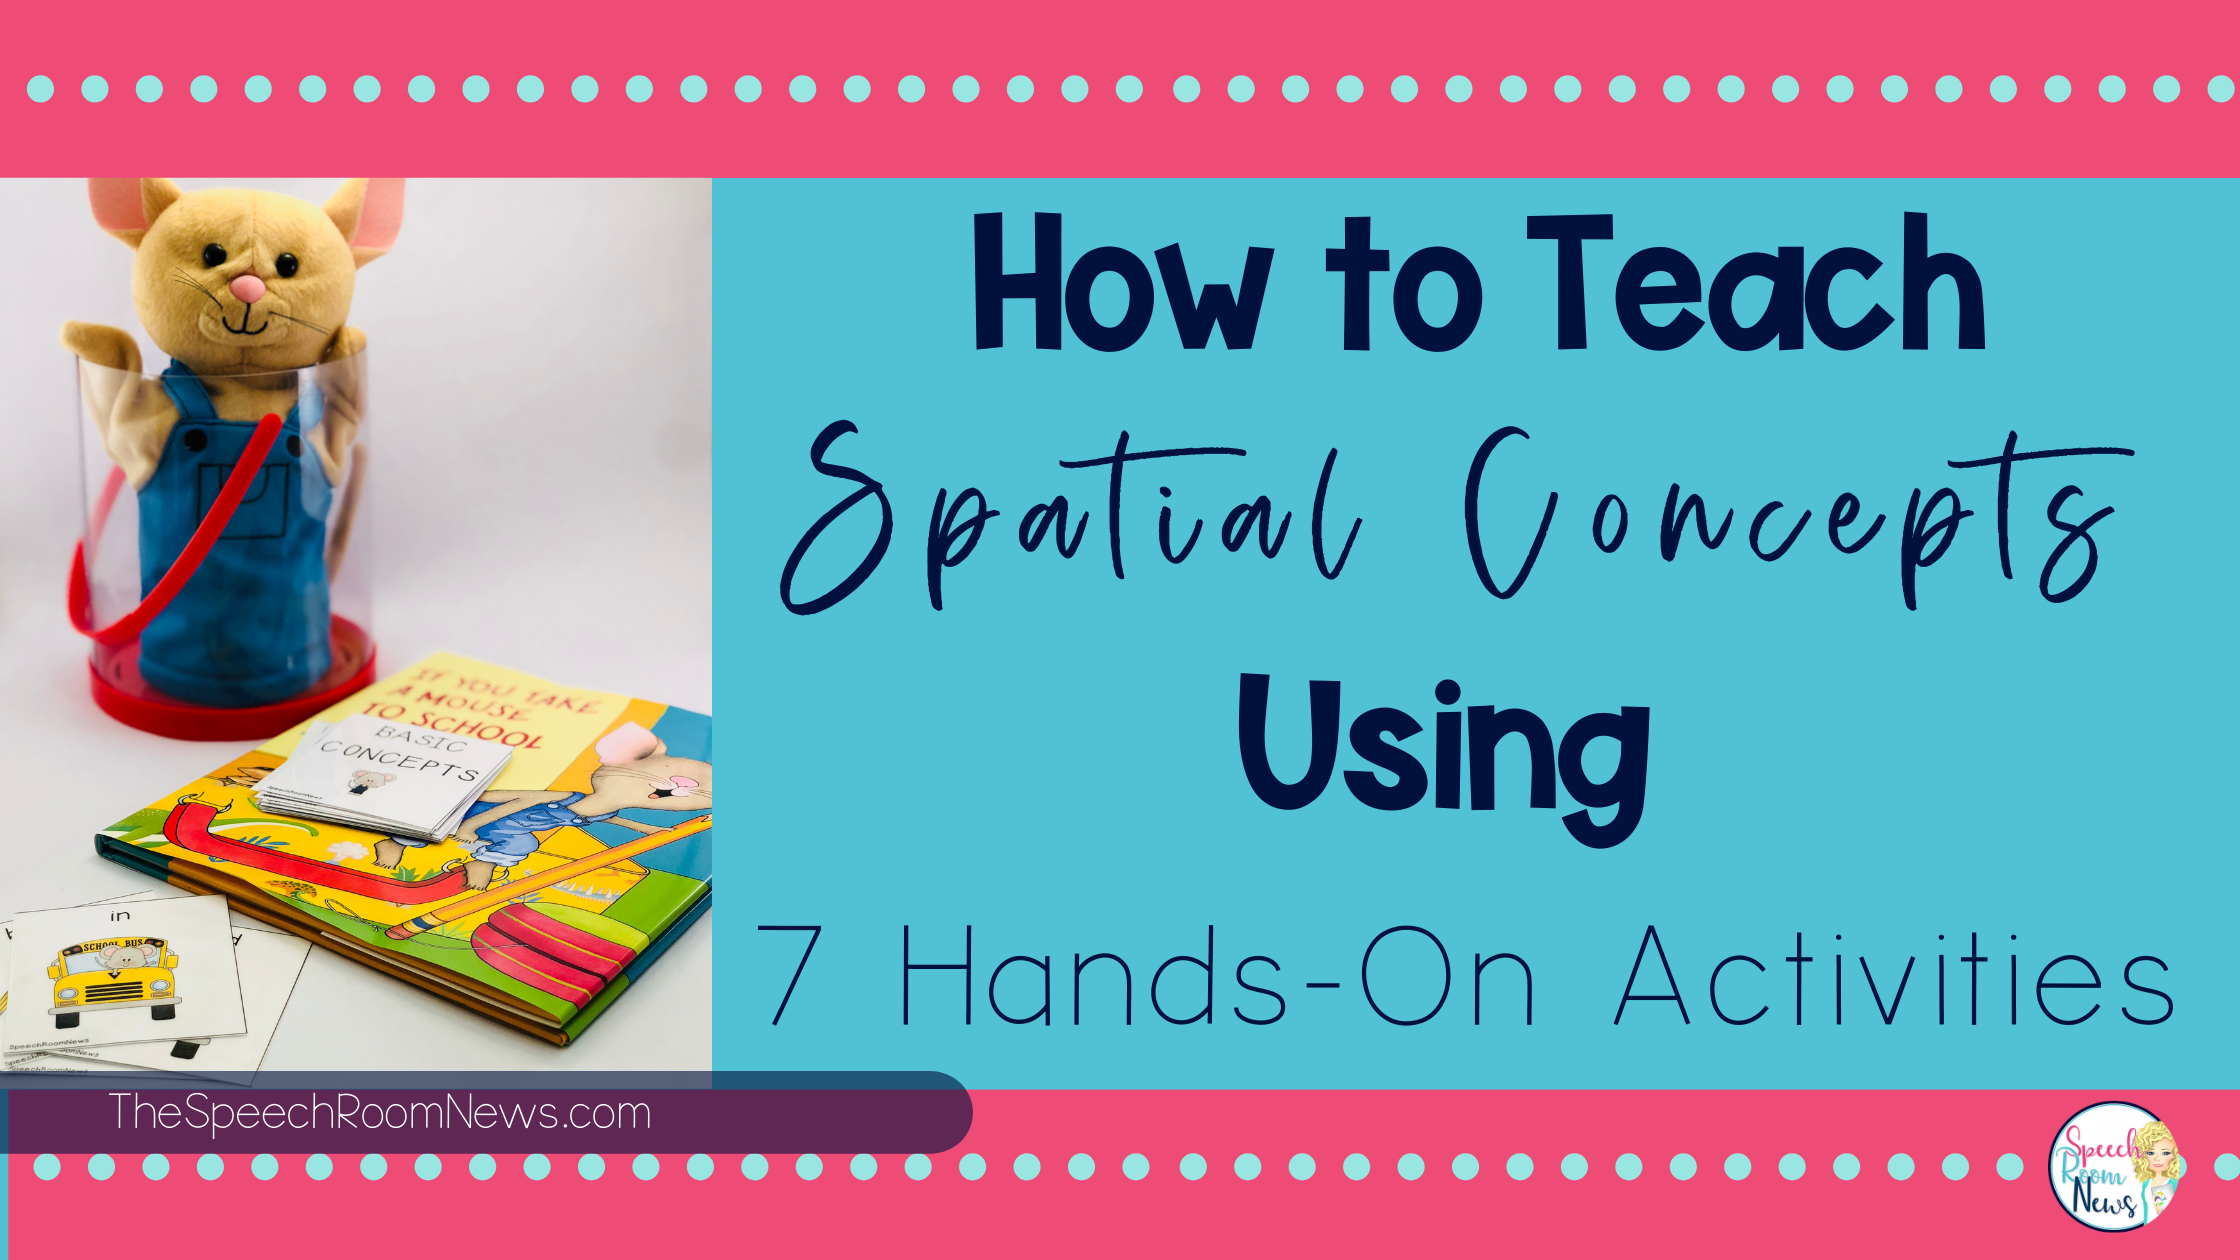 Photo of How to teach spatial concepts using 7 hands-on activities